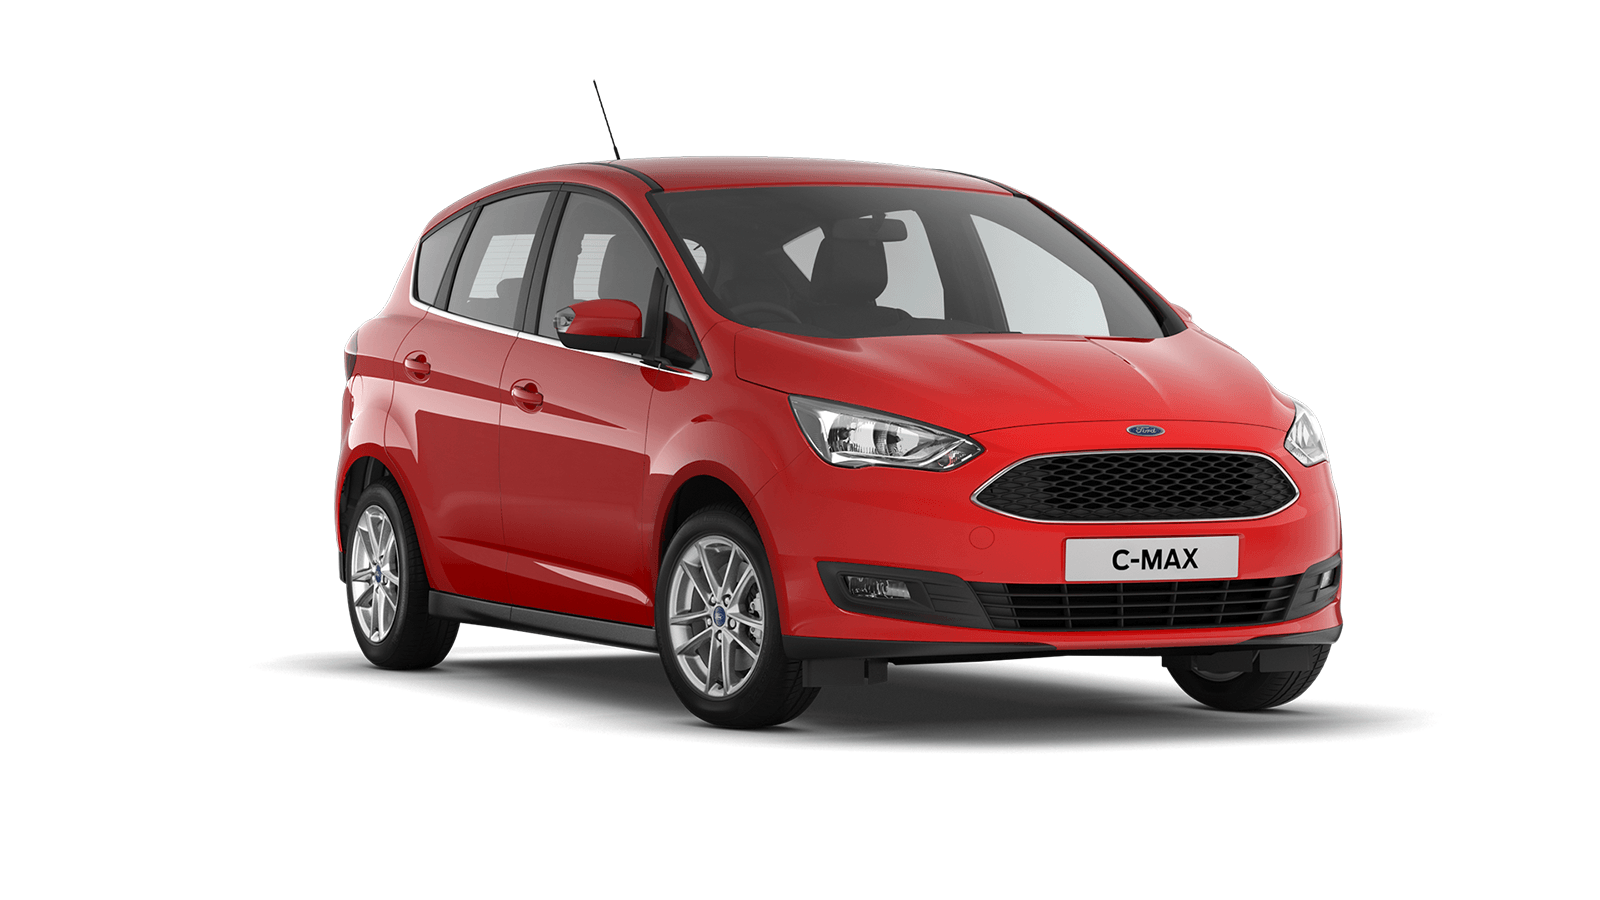 Ford C-MAX at Balmoral Garage